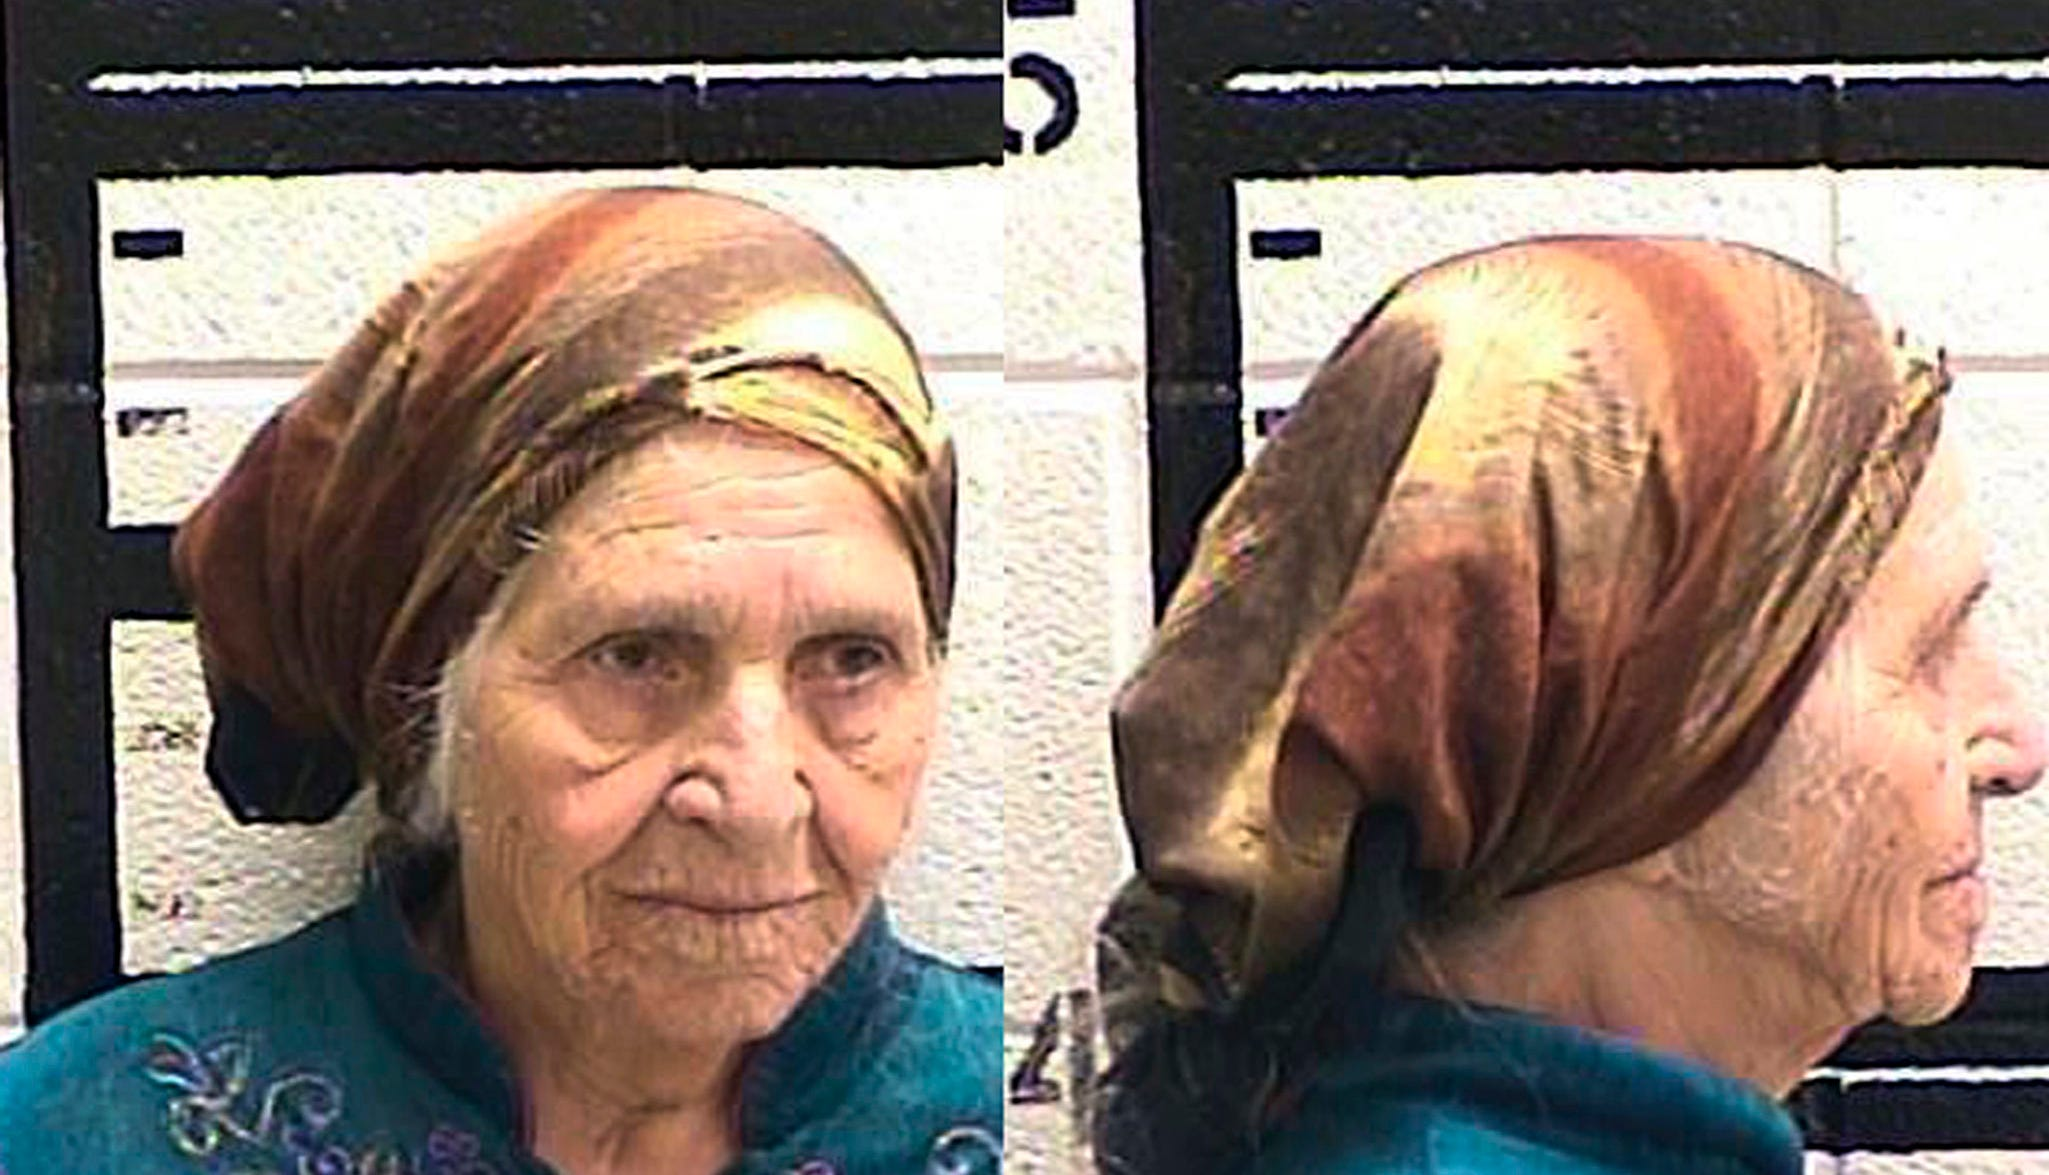 This Friday, Aug. 10, 2018 photo released by the Murray County Jail, Ga. shows Martha Al-Bishara, 87, under arrest. Al-Bishara was charged with criminal trespass and obstructing an officer Friday when police held her at gunpoint before bringing her to the ground with a jolt from the electrified prongs of a stun gun. Officers used the taser on Al-Bishara when she didn't obey commands to drop a knife in her hand. Relatives said Al-Bishara does't speak English and was merely cutting out dandelions with a kitchen knife near her home in Chatsworth. (Murray County Jail via AP) ORG XMIT: MH101